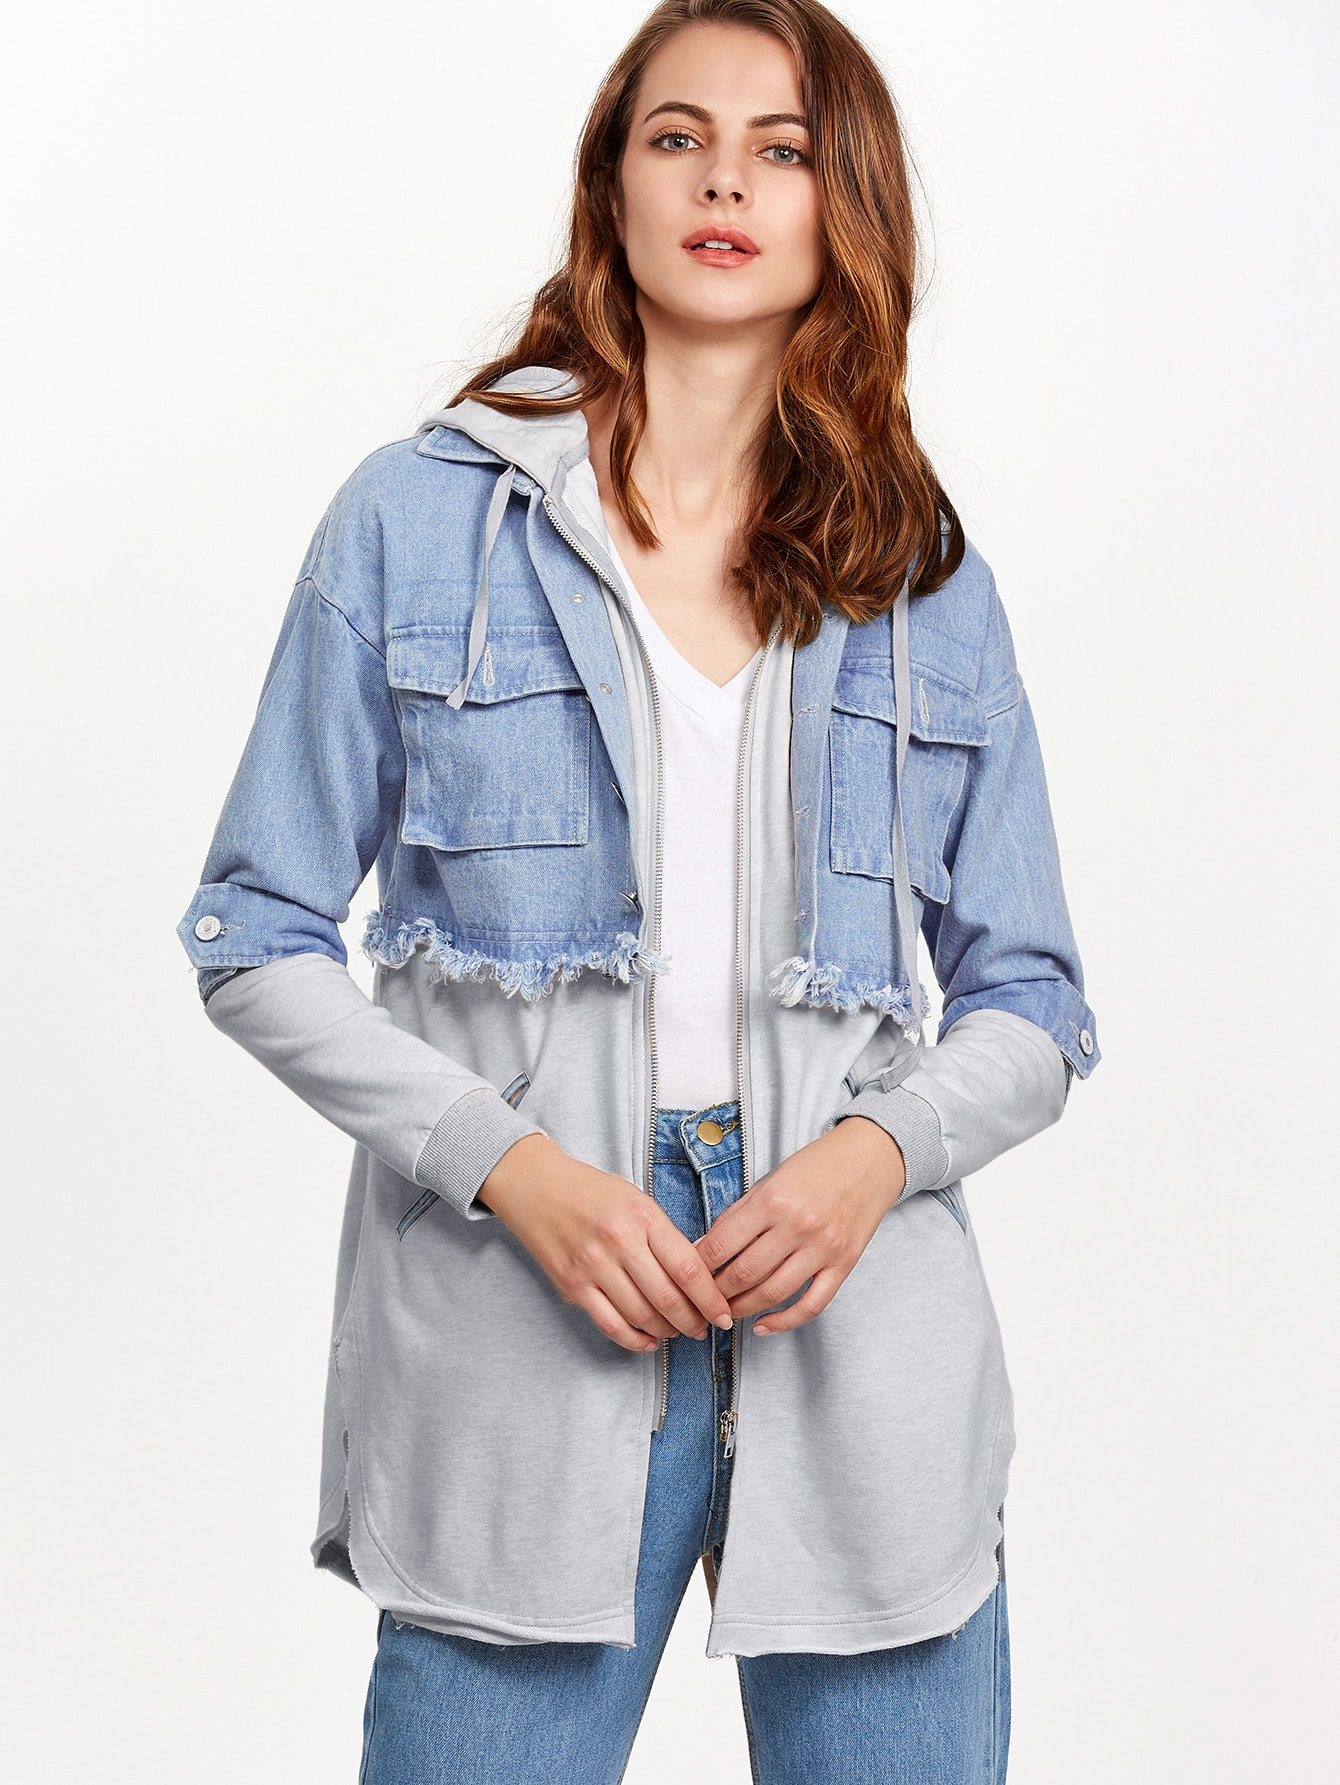 Contrast Split Back Zip Up 2 In 1 Hooded JacketContrast Split Back Zip Up 2 In 1 Hooded Jacket<br><br>color: Grey<br>size: L,M,S,XS